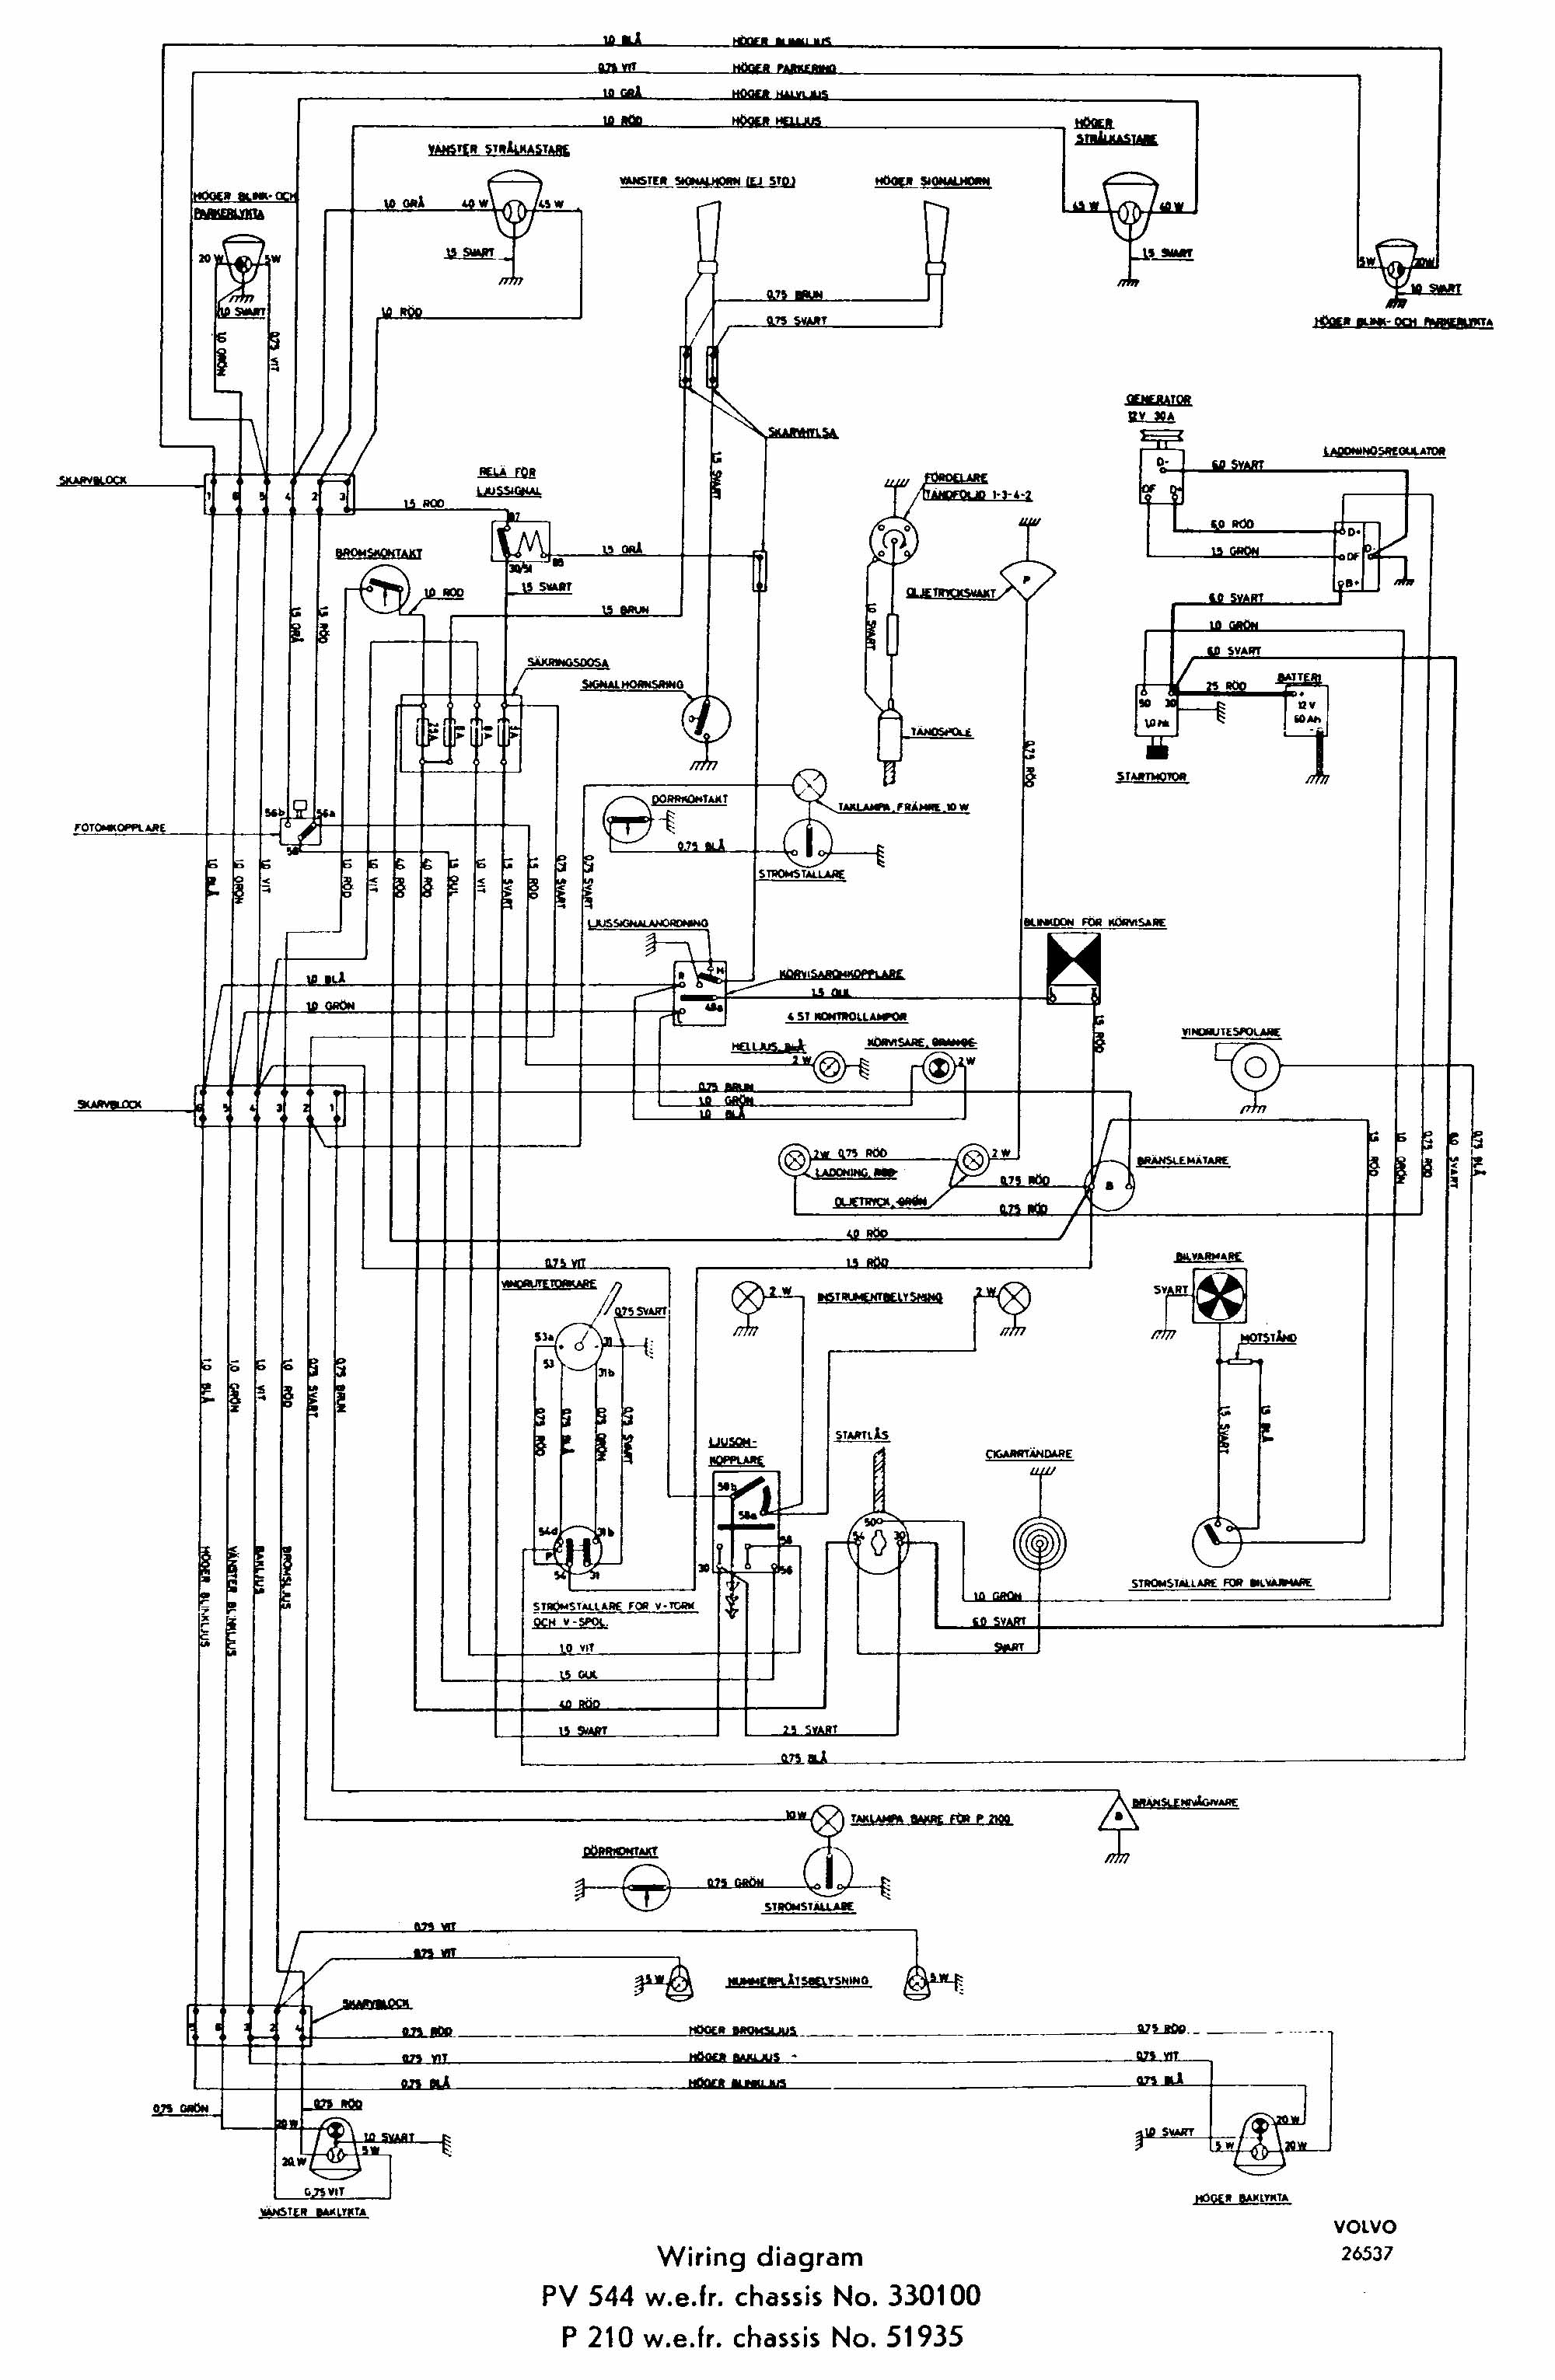 [WRG-4671] 2002 Volvo V70 Engine Diagram